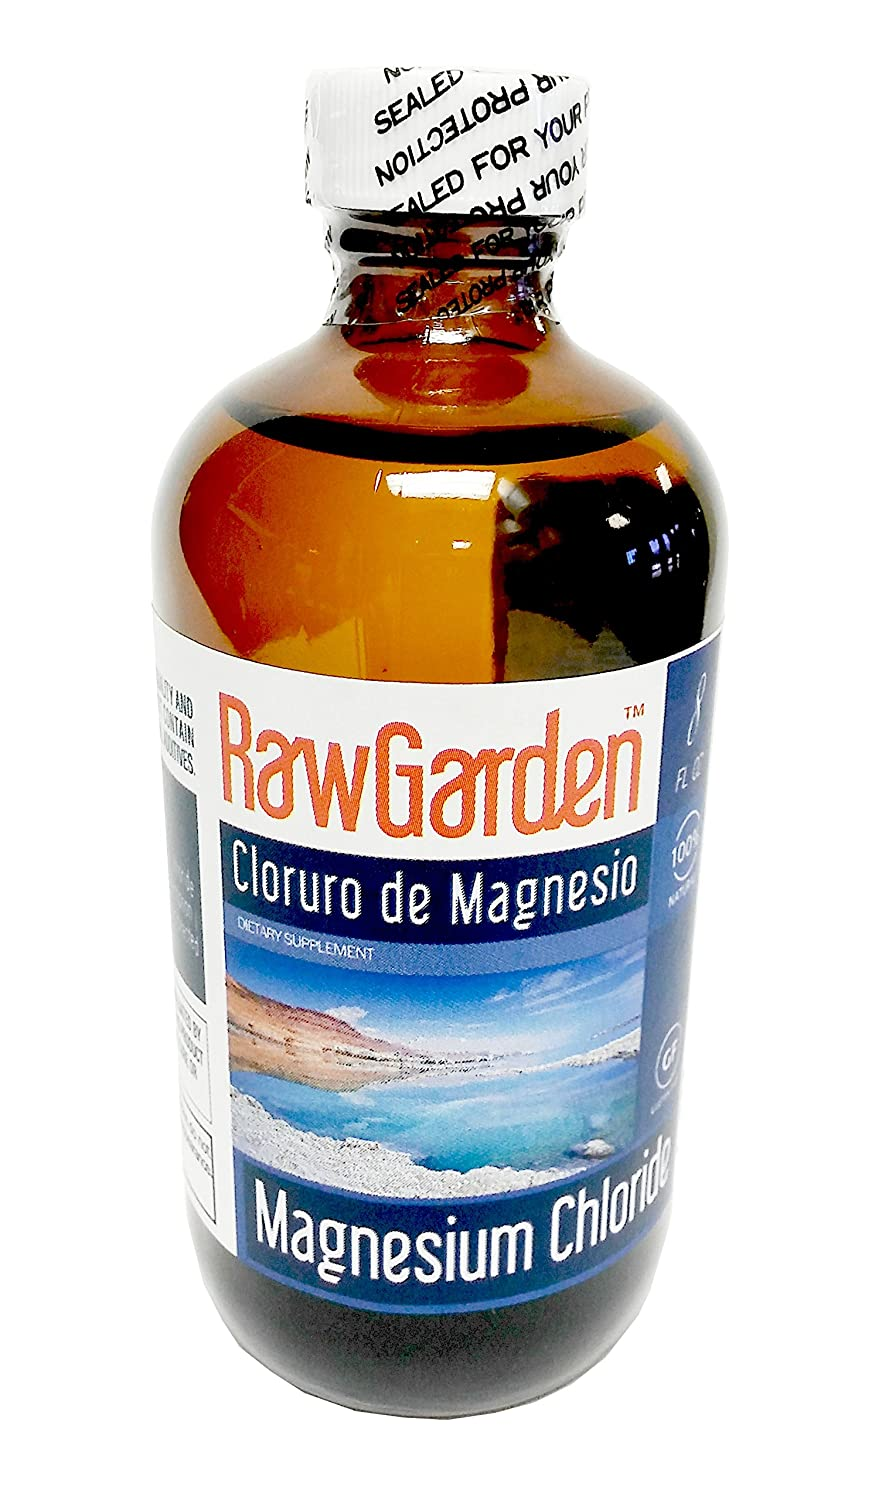 Amazon.com : Raw Garden Magnesium Chloride 500 mg High Potency 180 Capsules 1 Pack : Grocery & Gourmet Food